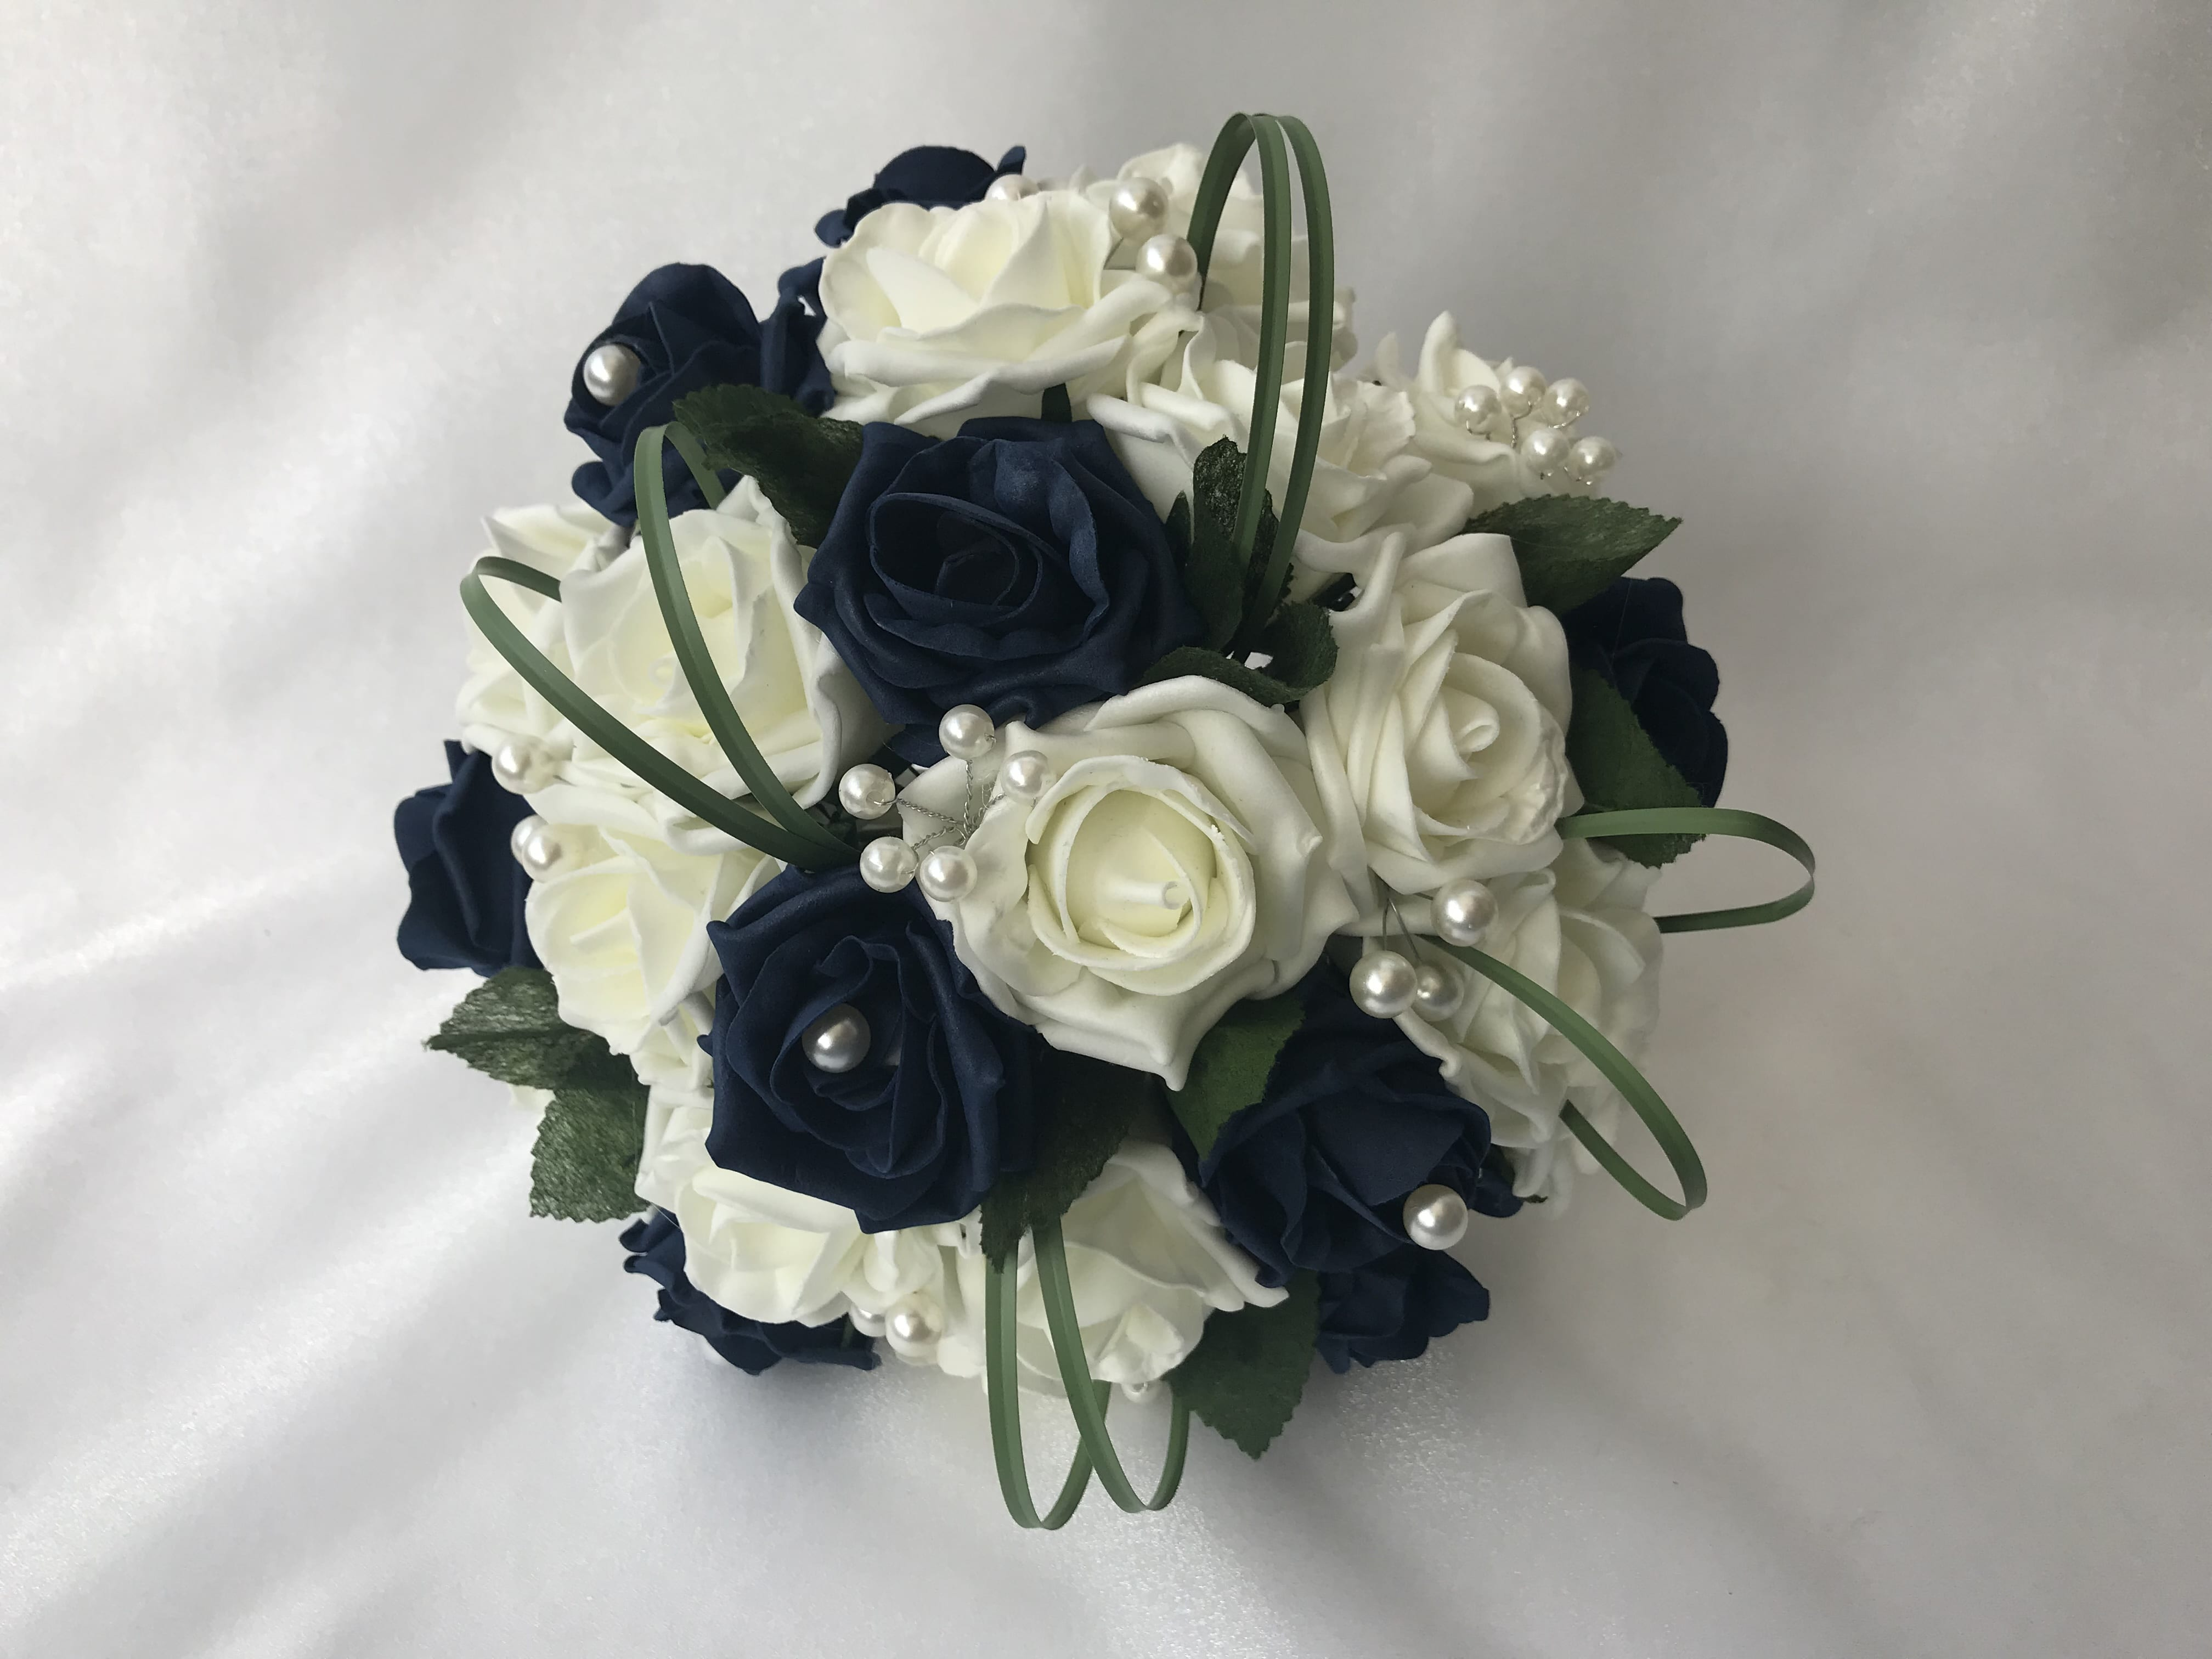 Artificial Wedding Bouquets.Artificial Wedding Flowers Brides Posy Bouquet Posy Grass